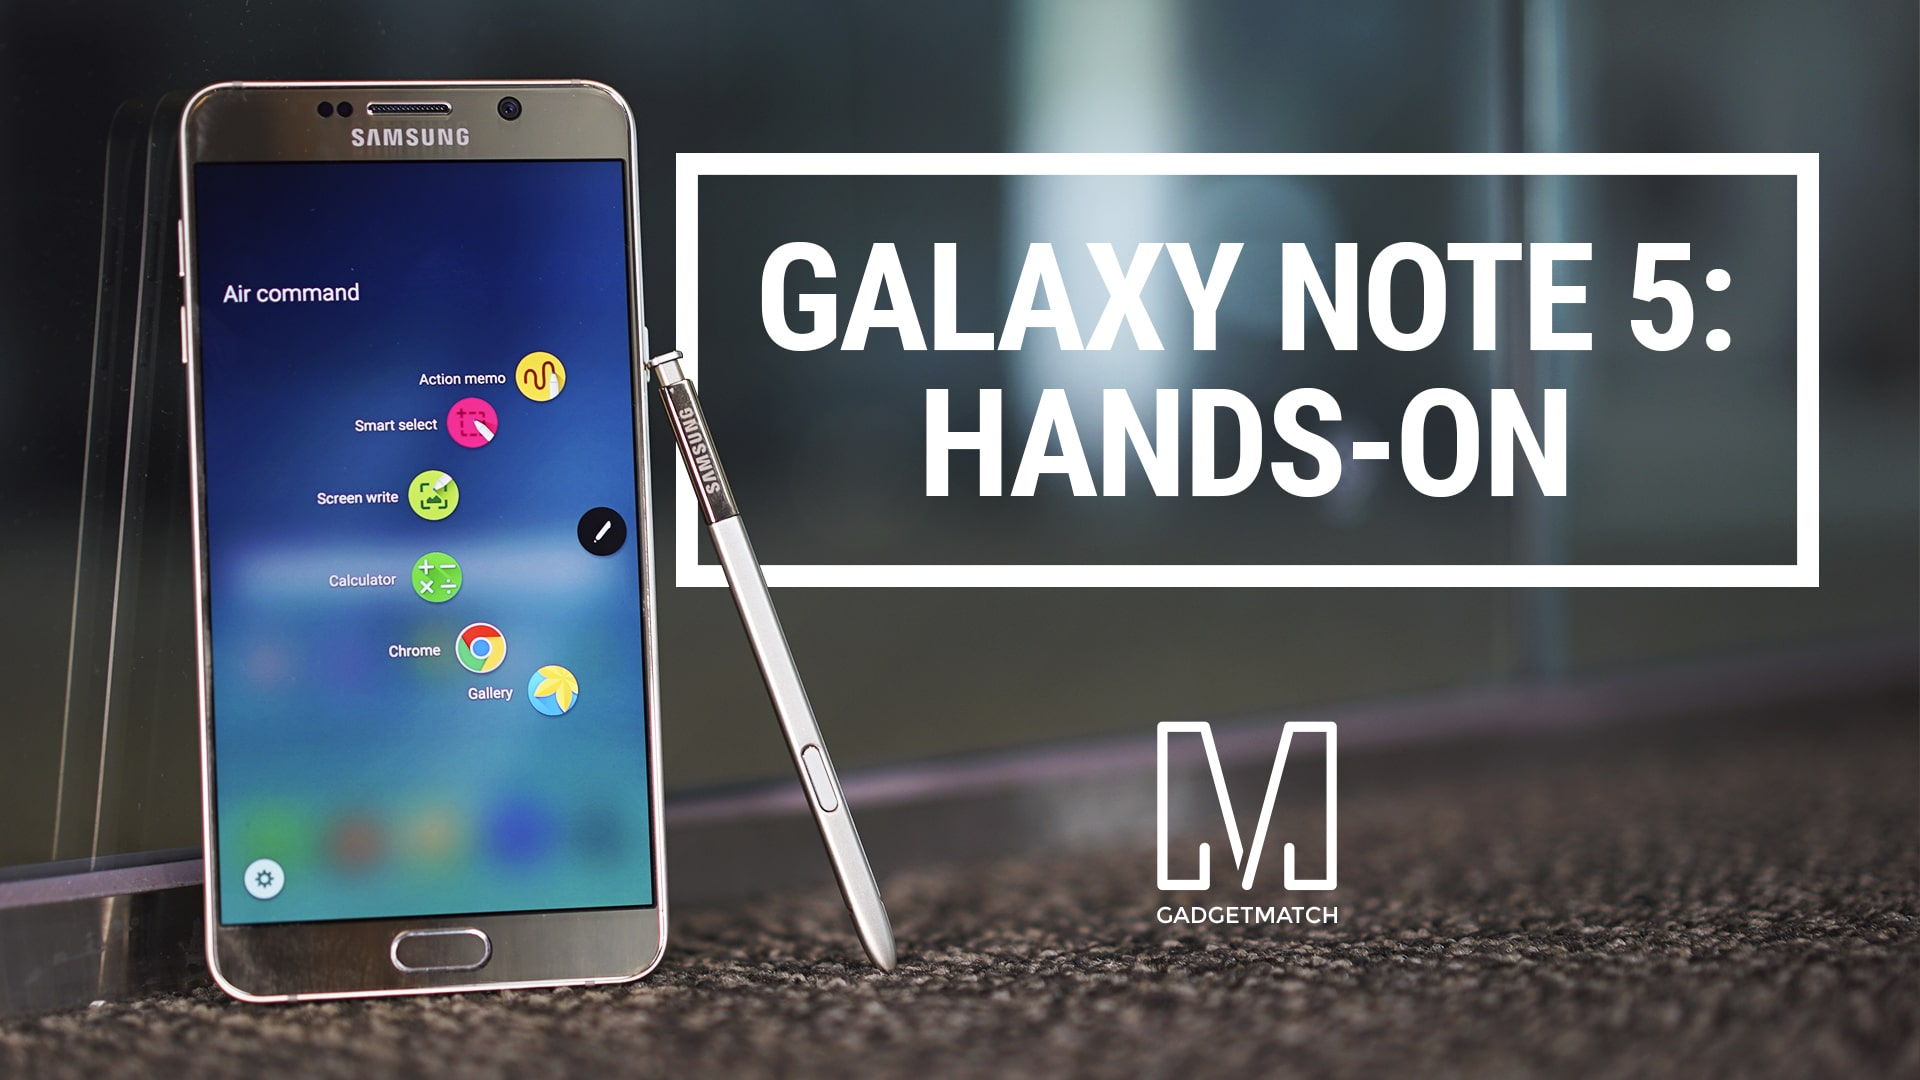 Galaxy Note 5 Hands-On